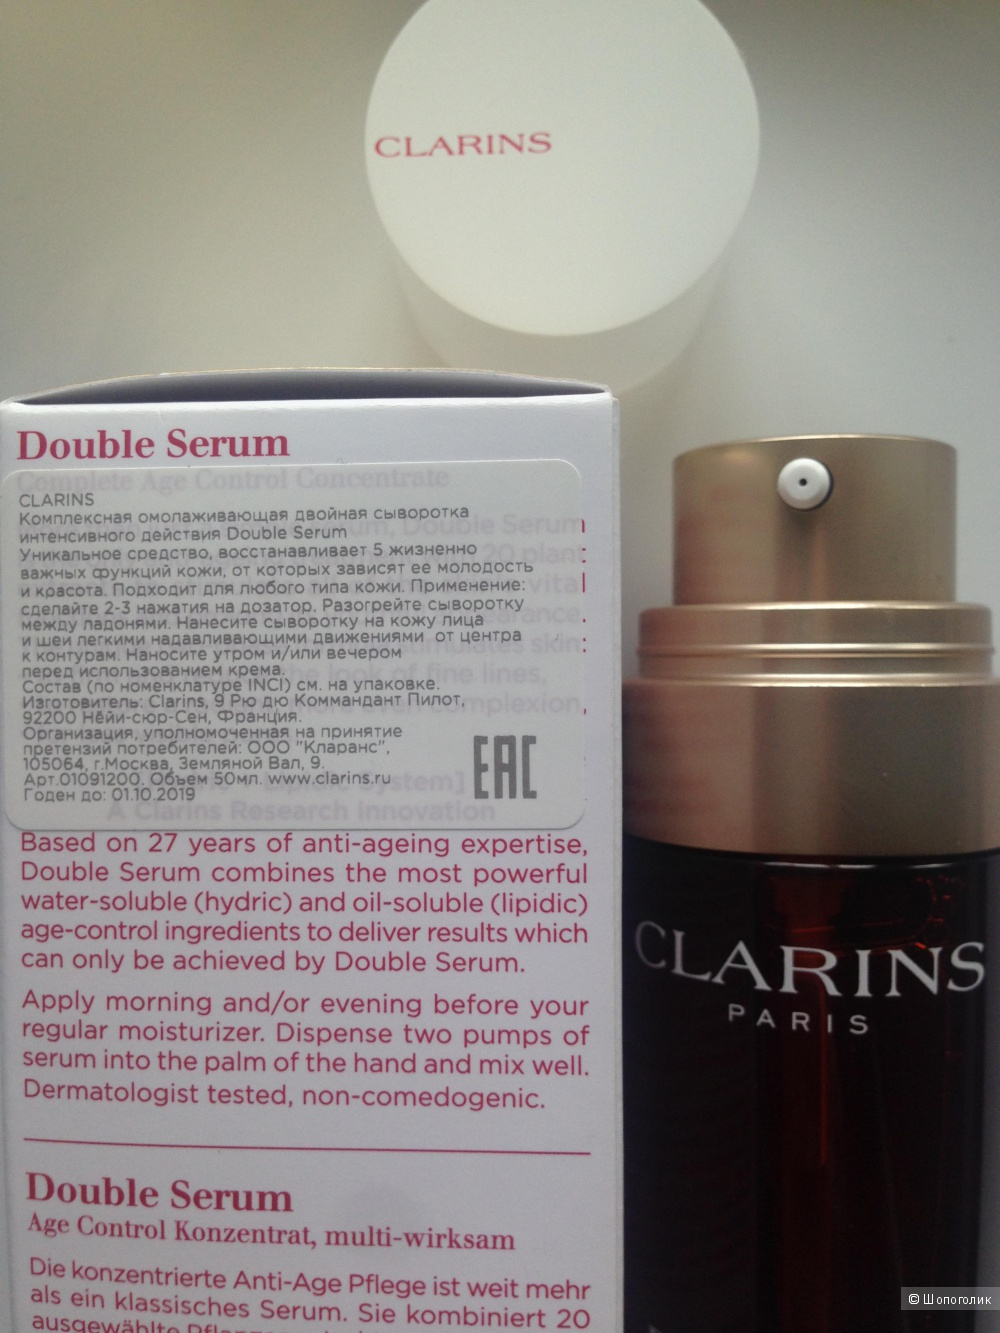 Clarins DOUBLE SERUM сыворотка 50 ml